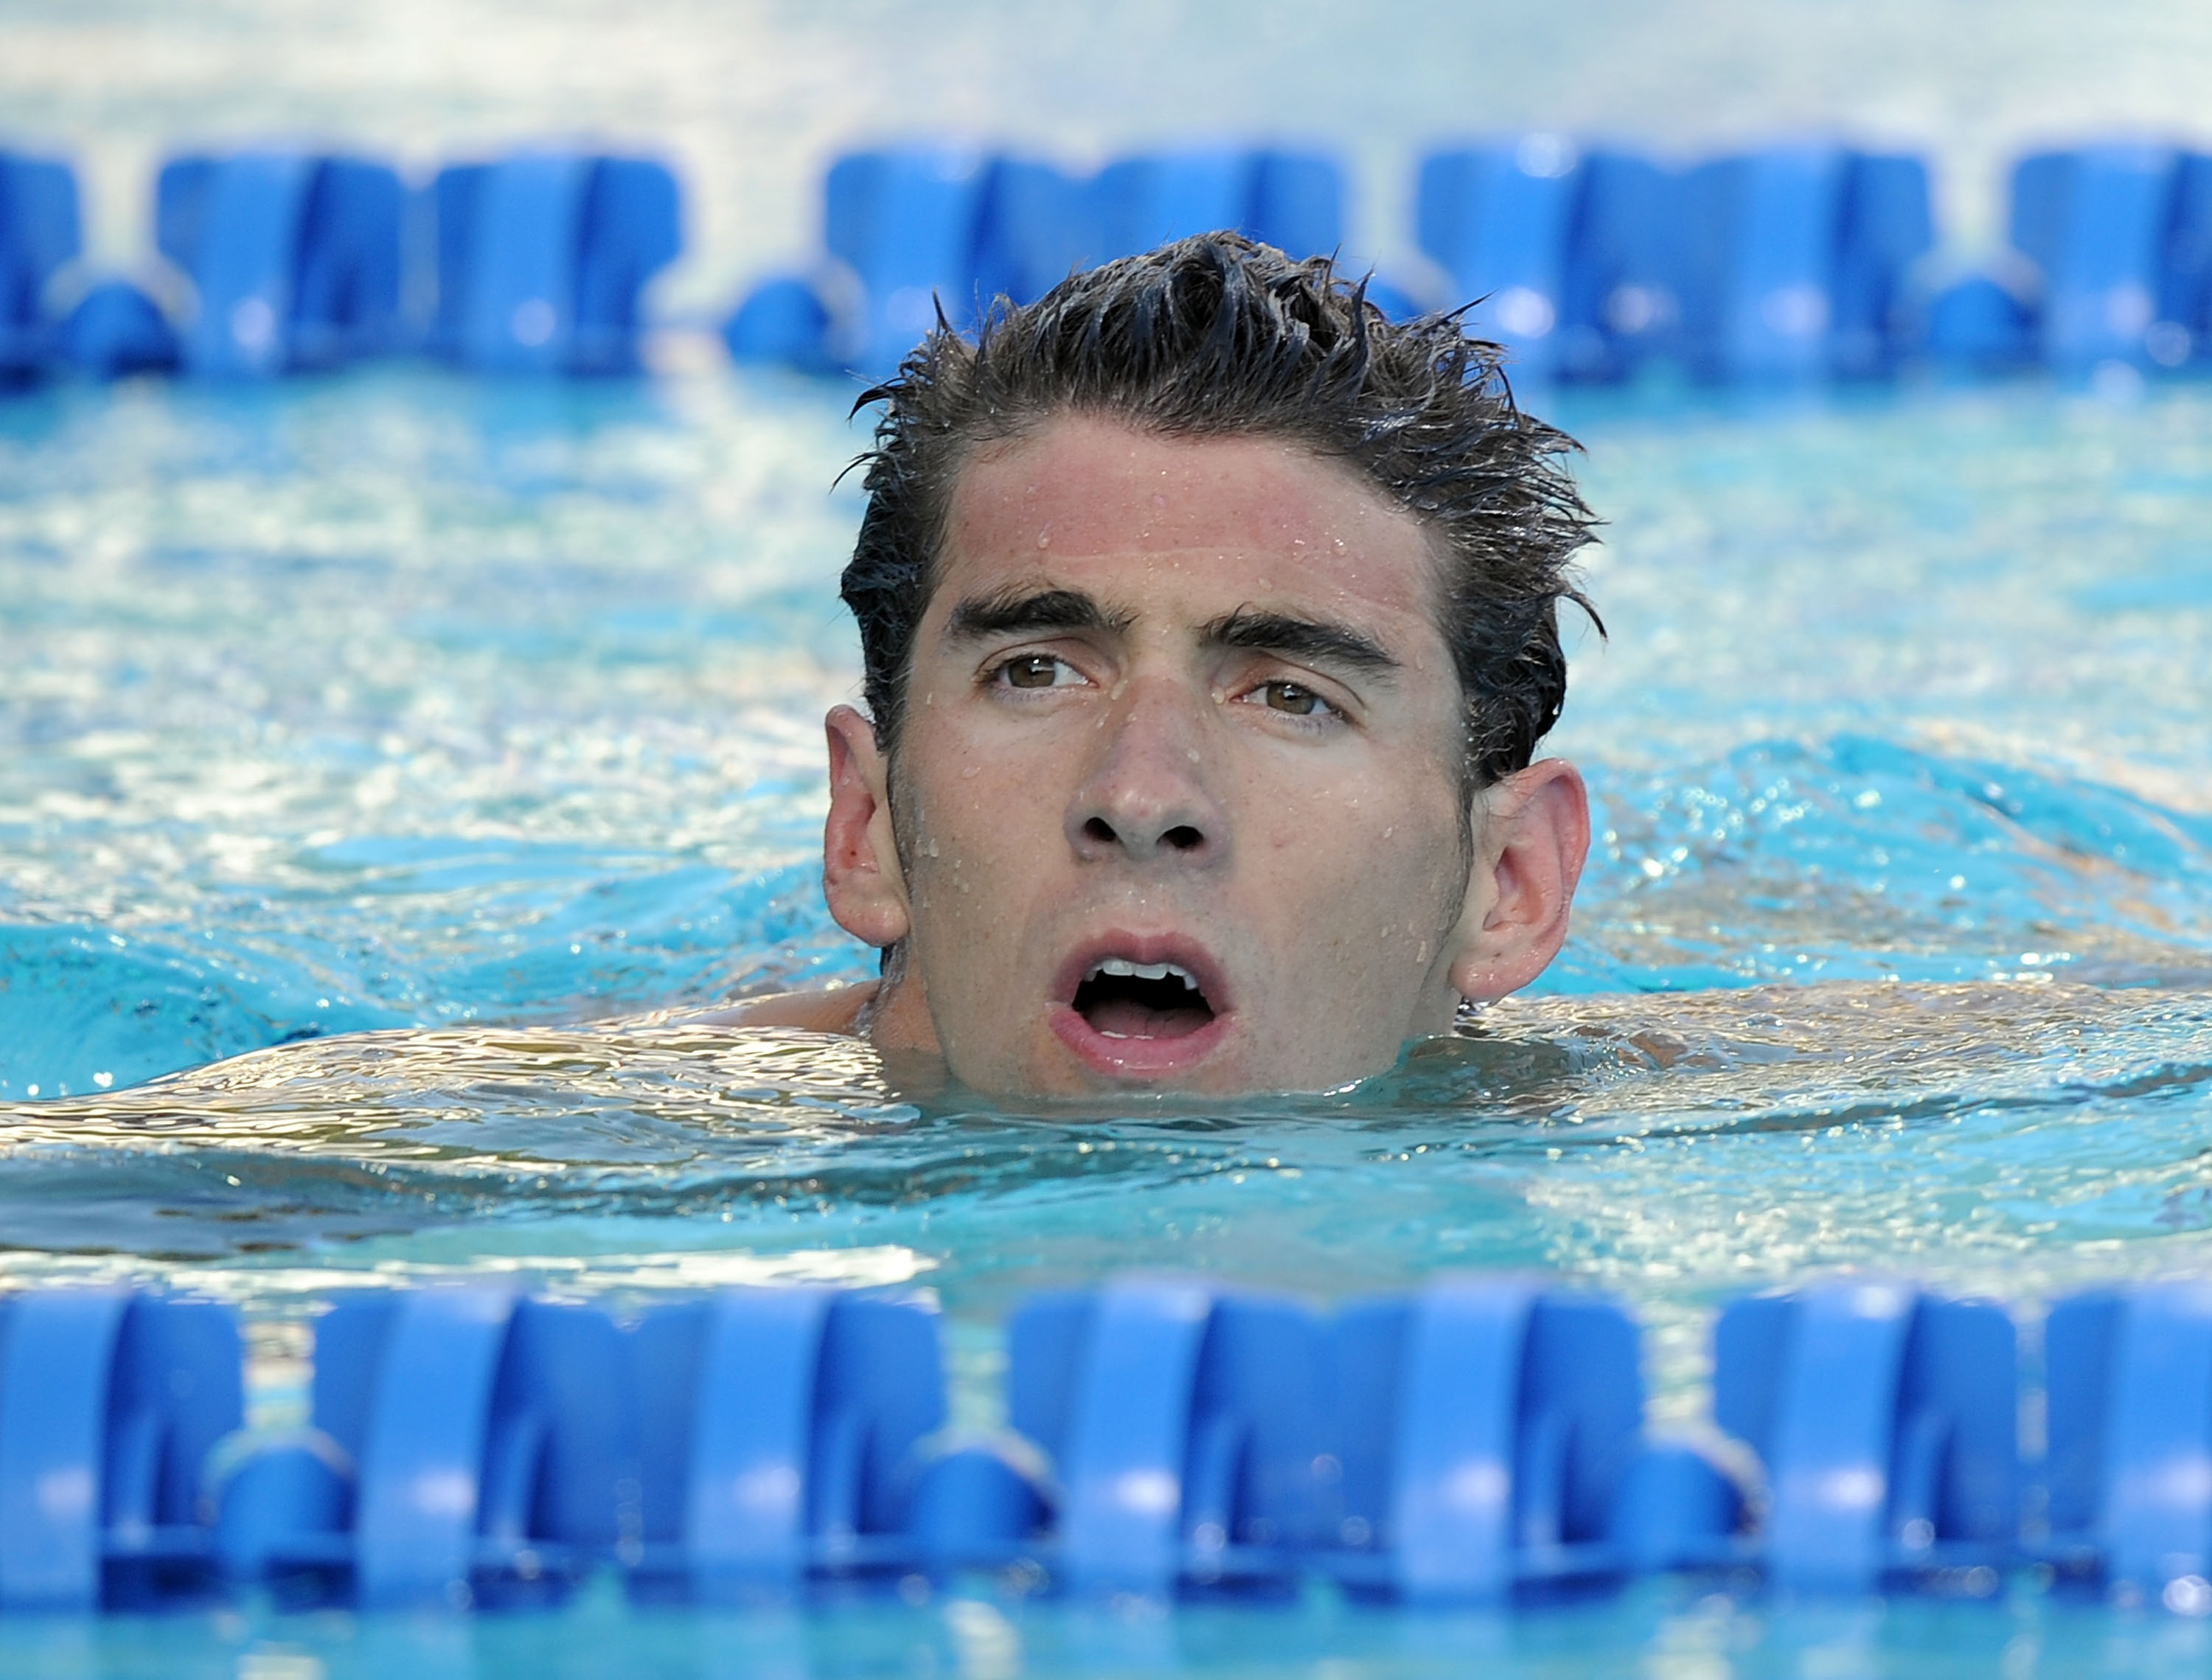 IRVINE, CA - AUGUST 07:  Michael Phelps reacts after his swim in the 200 LC Meter Backstroke Final during the 2010 ConocoPhillips National Championships at the William Woollett Jr. Aquatics Complex on August 7, 2010 in Irvine, California. Phelps finished